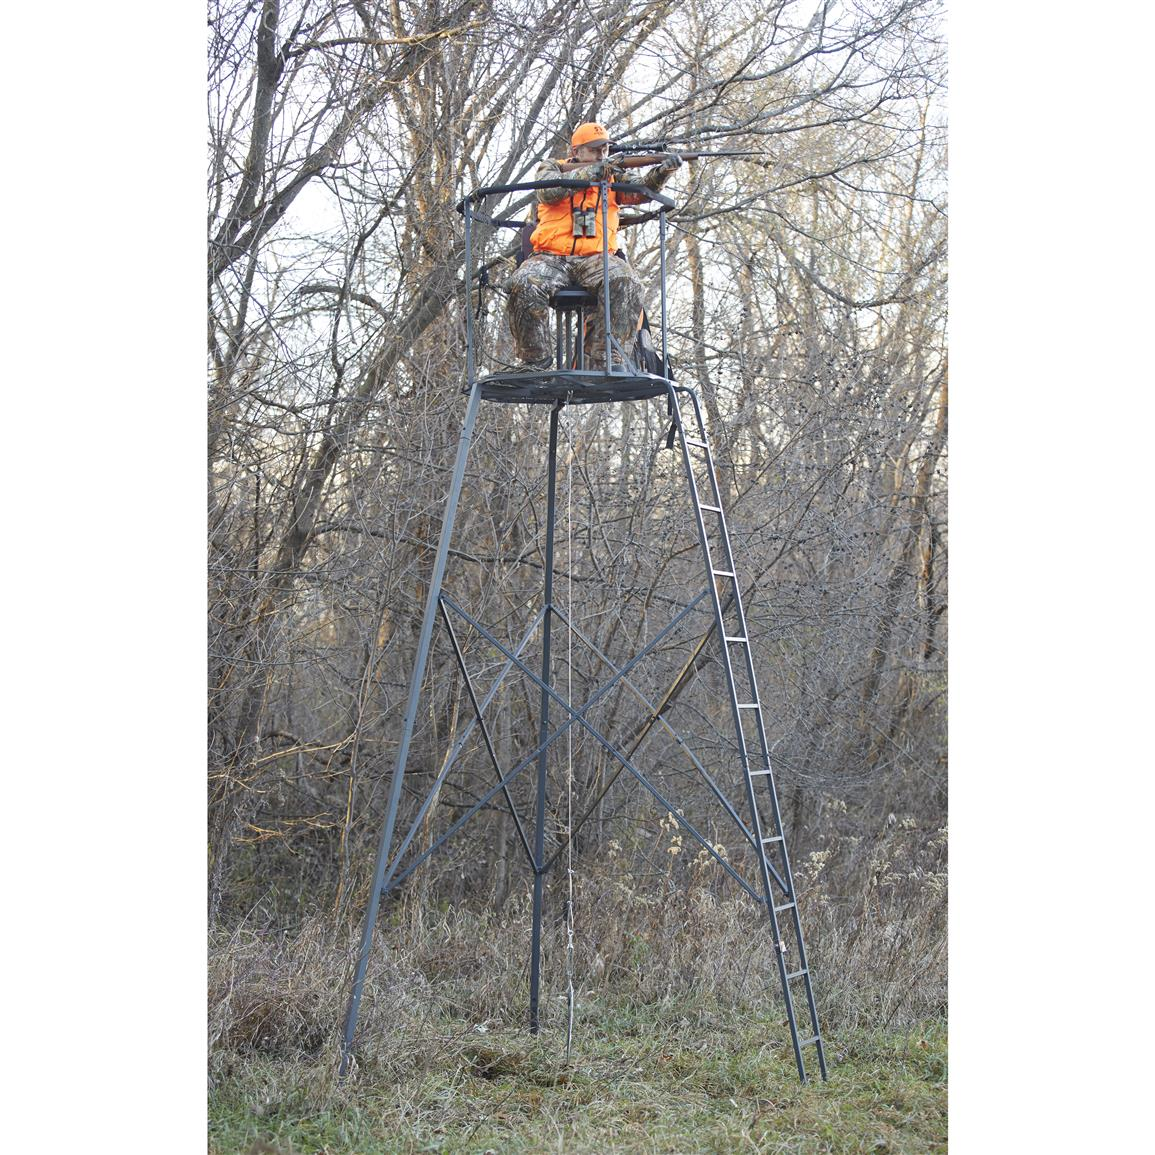 Includes extra-large leg stakes, center-mount tie down kit, and Safe Tree Stand Hunting Strategies DVD